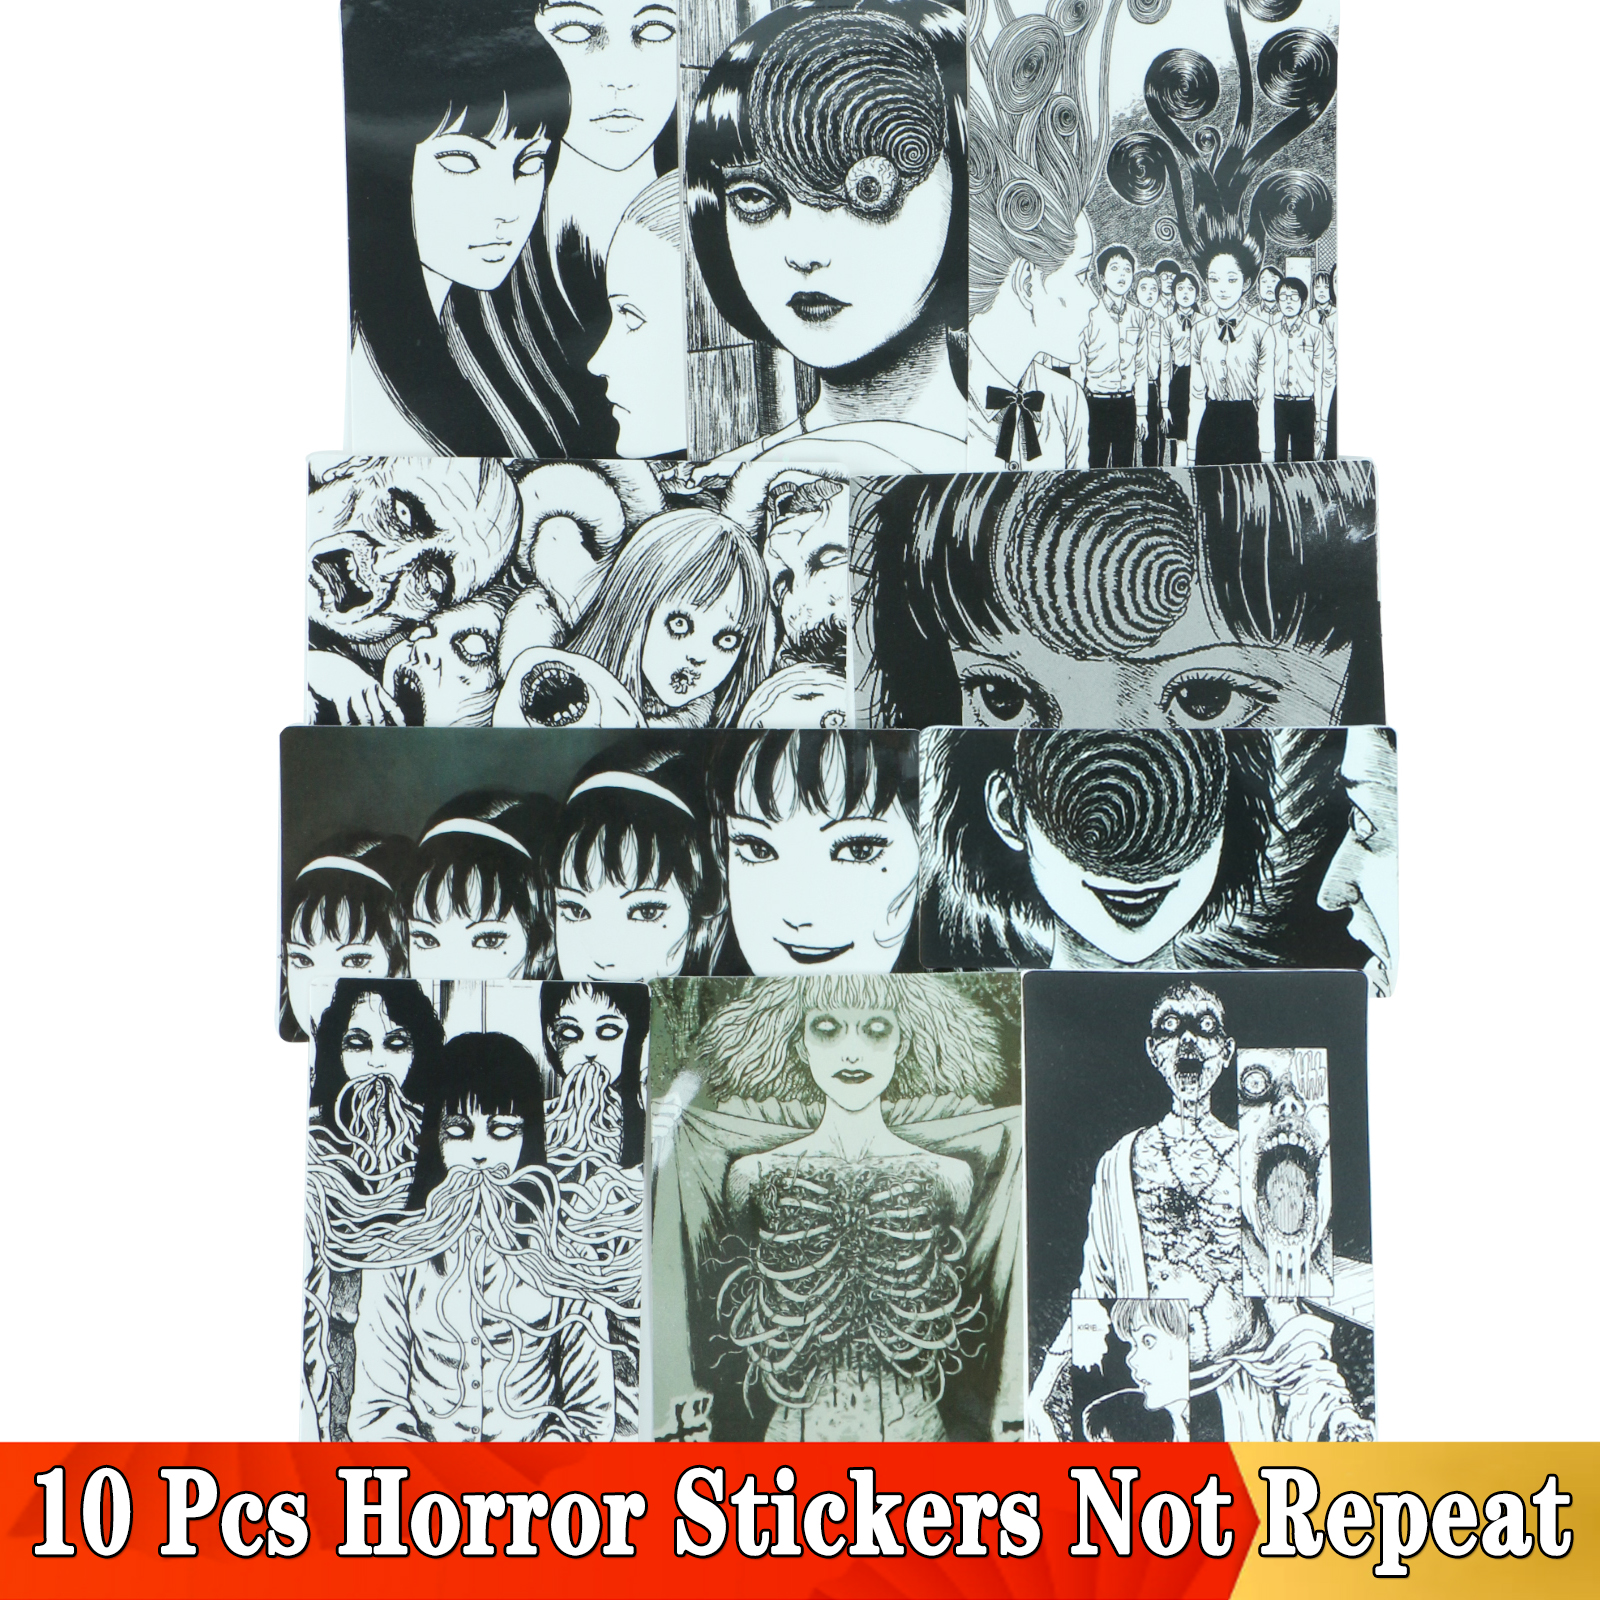 10 Pcs Horror Comic Sticker Junji Ito Fujiang Tomie Black And White Japan Anime For Snowboard Laptop Luggage Car Fridge Stickers